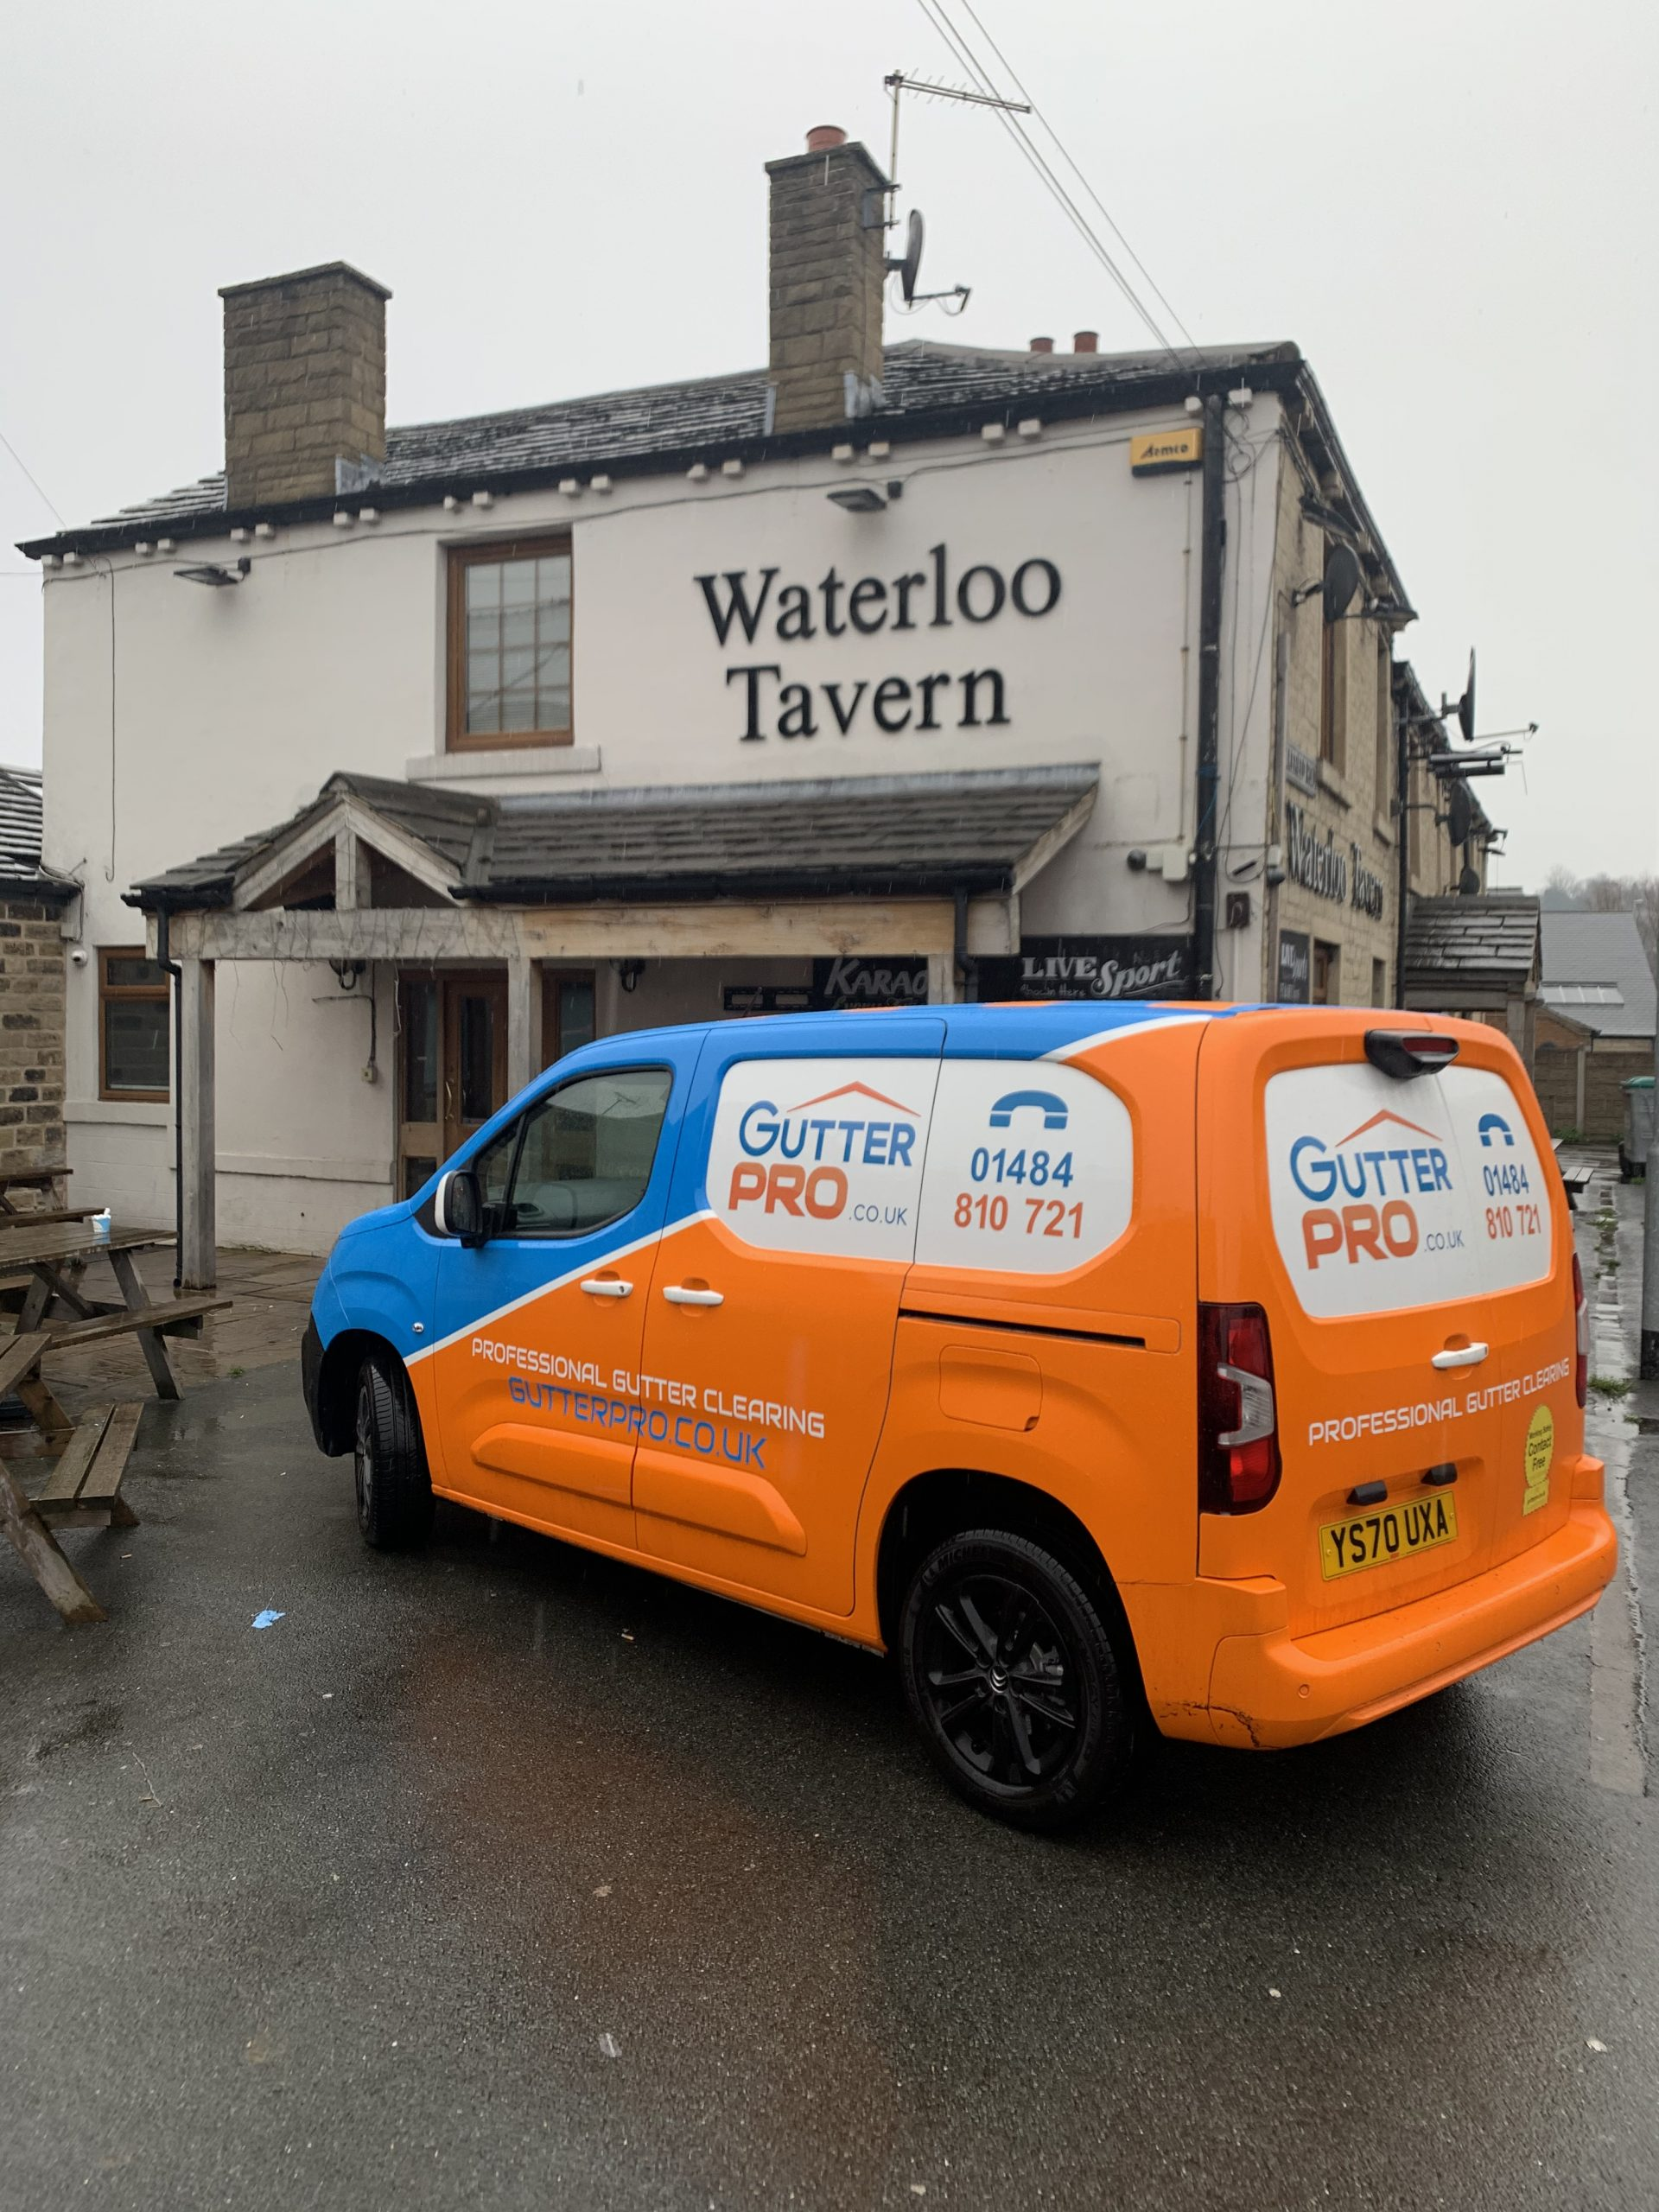 Gutter Cleaning Waterloo Tavern